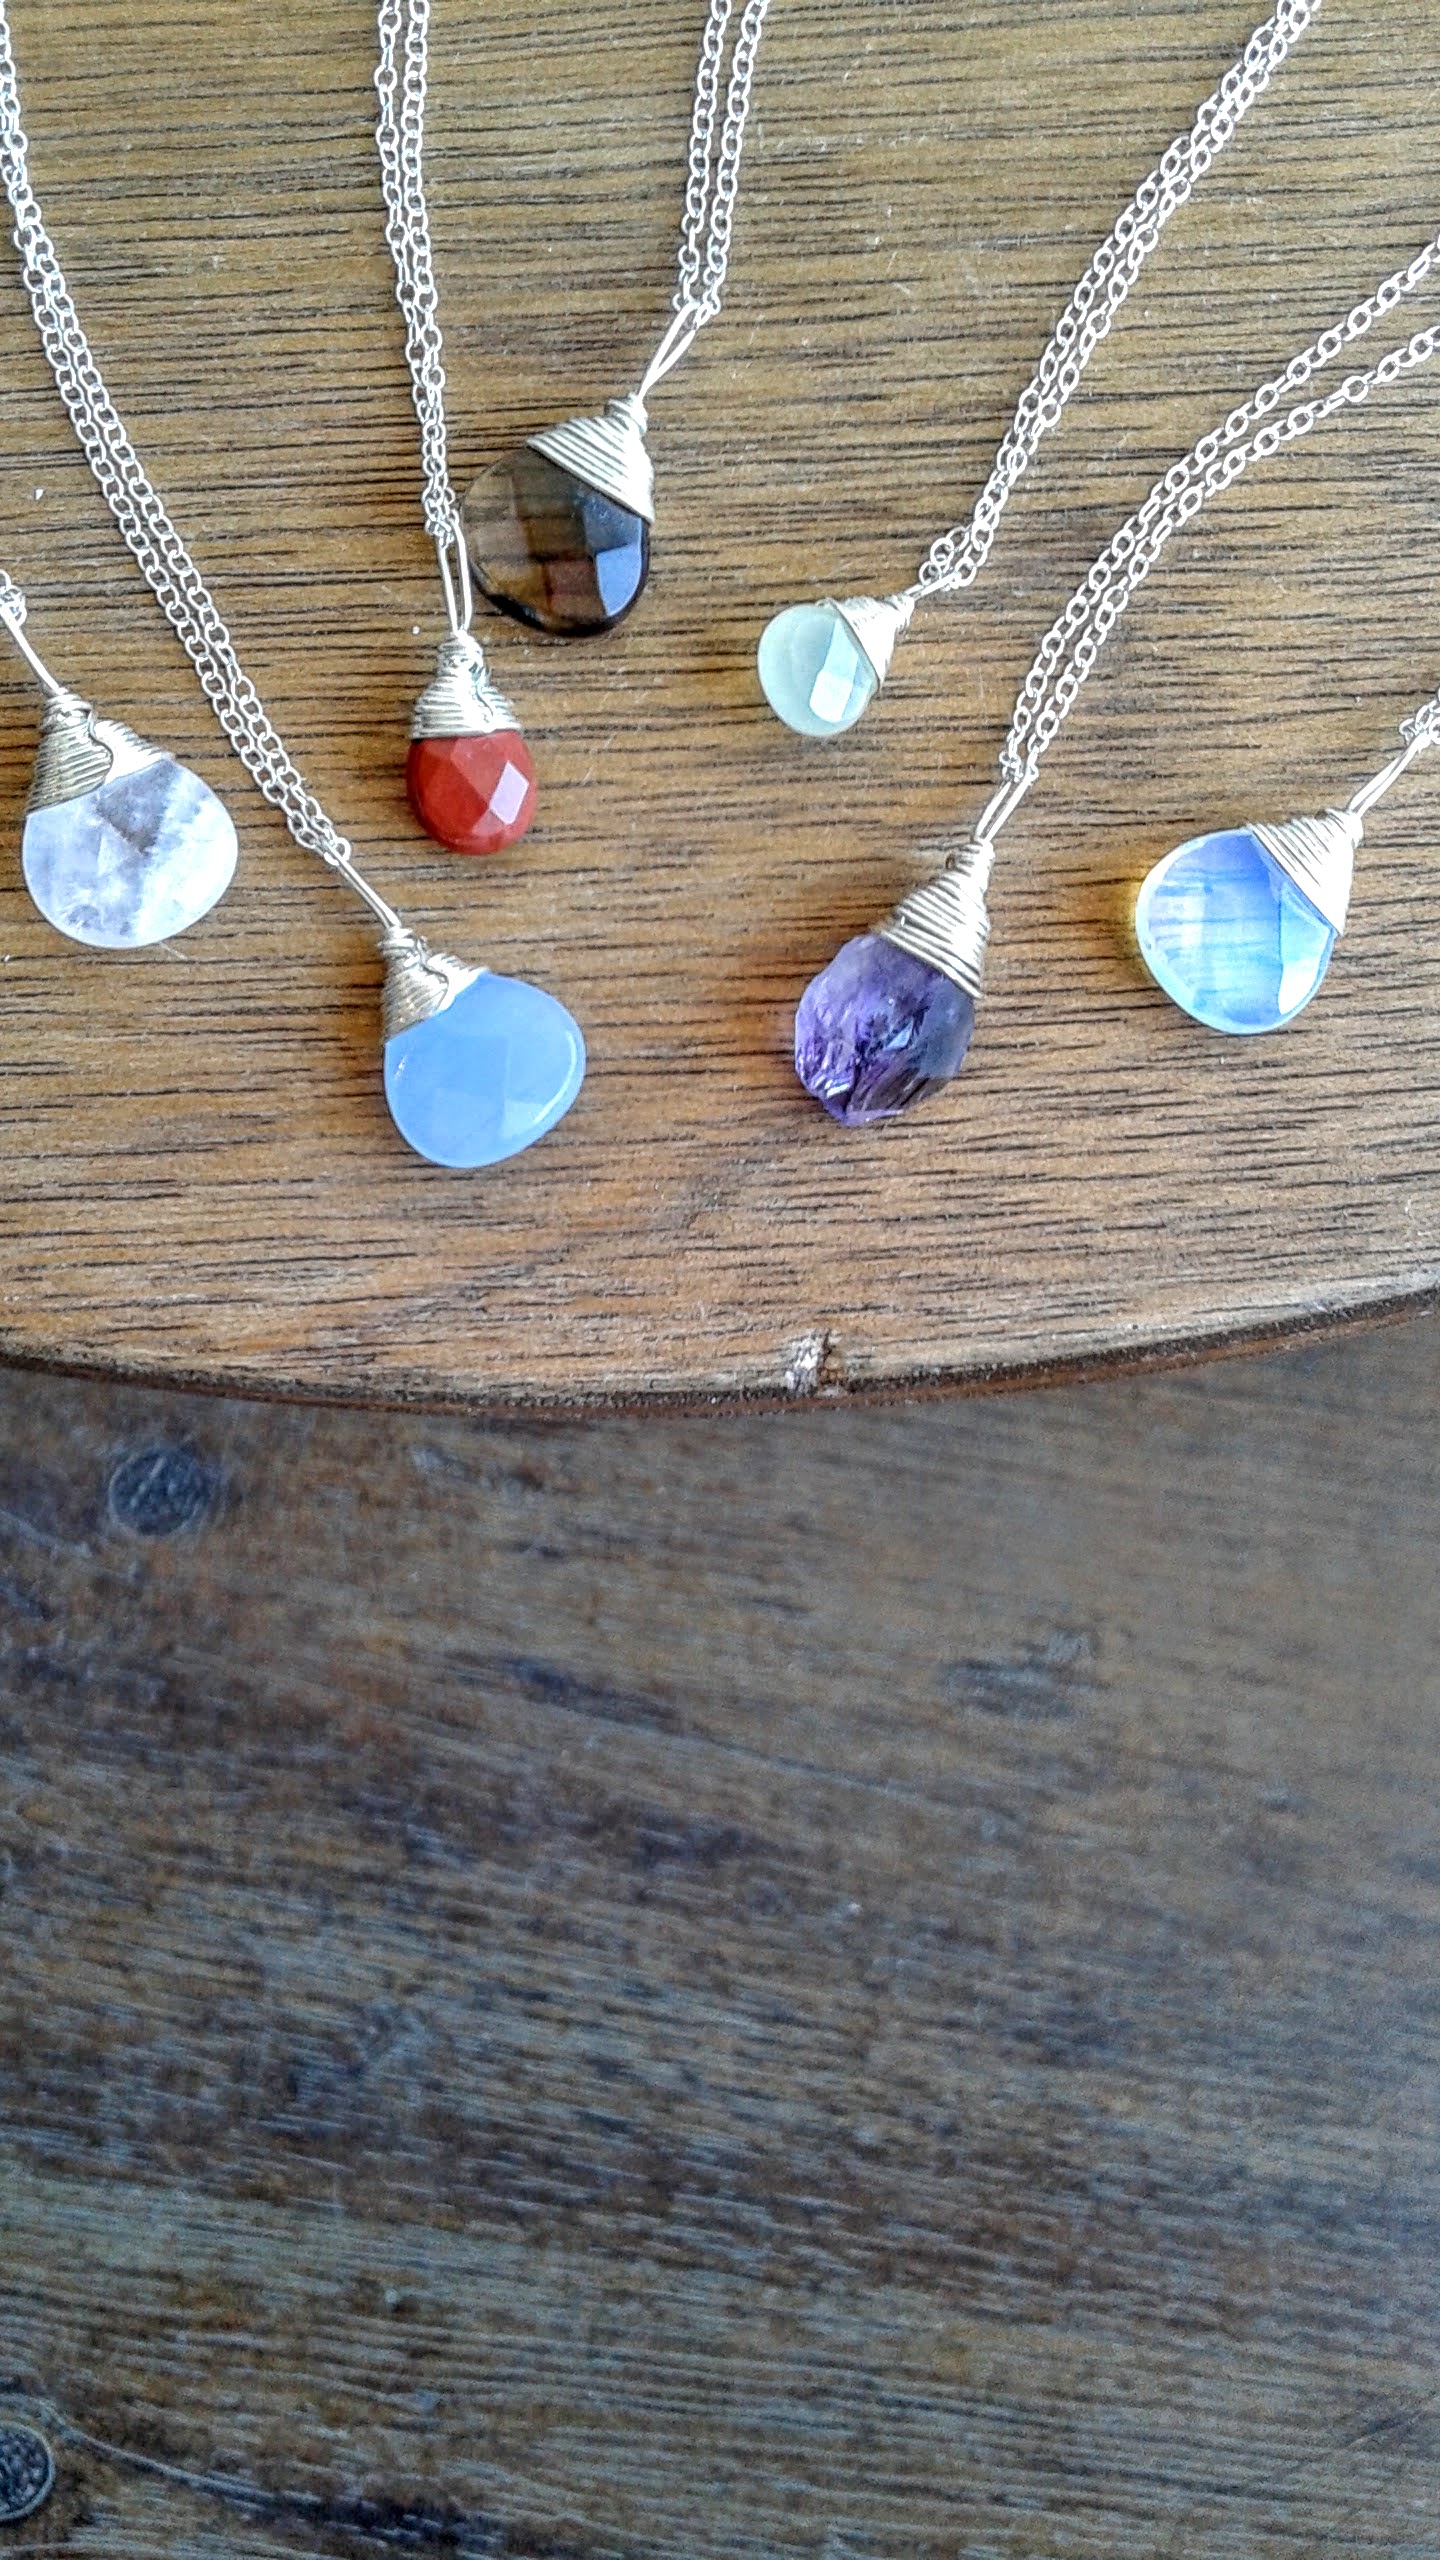 Darling Gems For You necklaces, $30 each